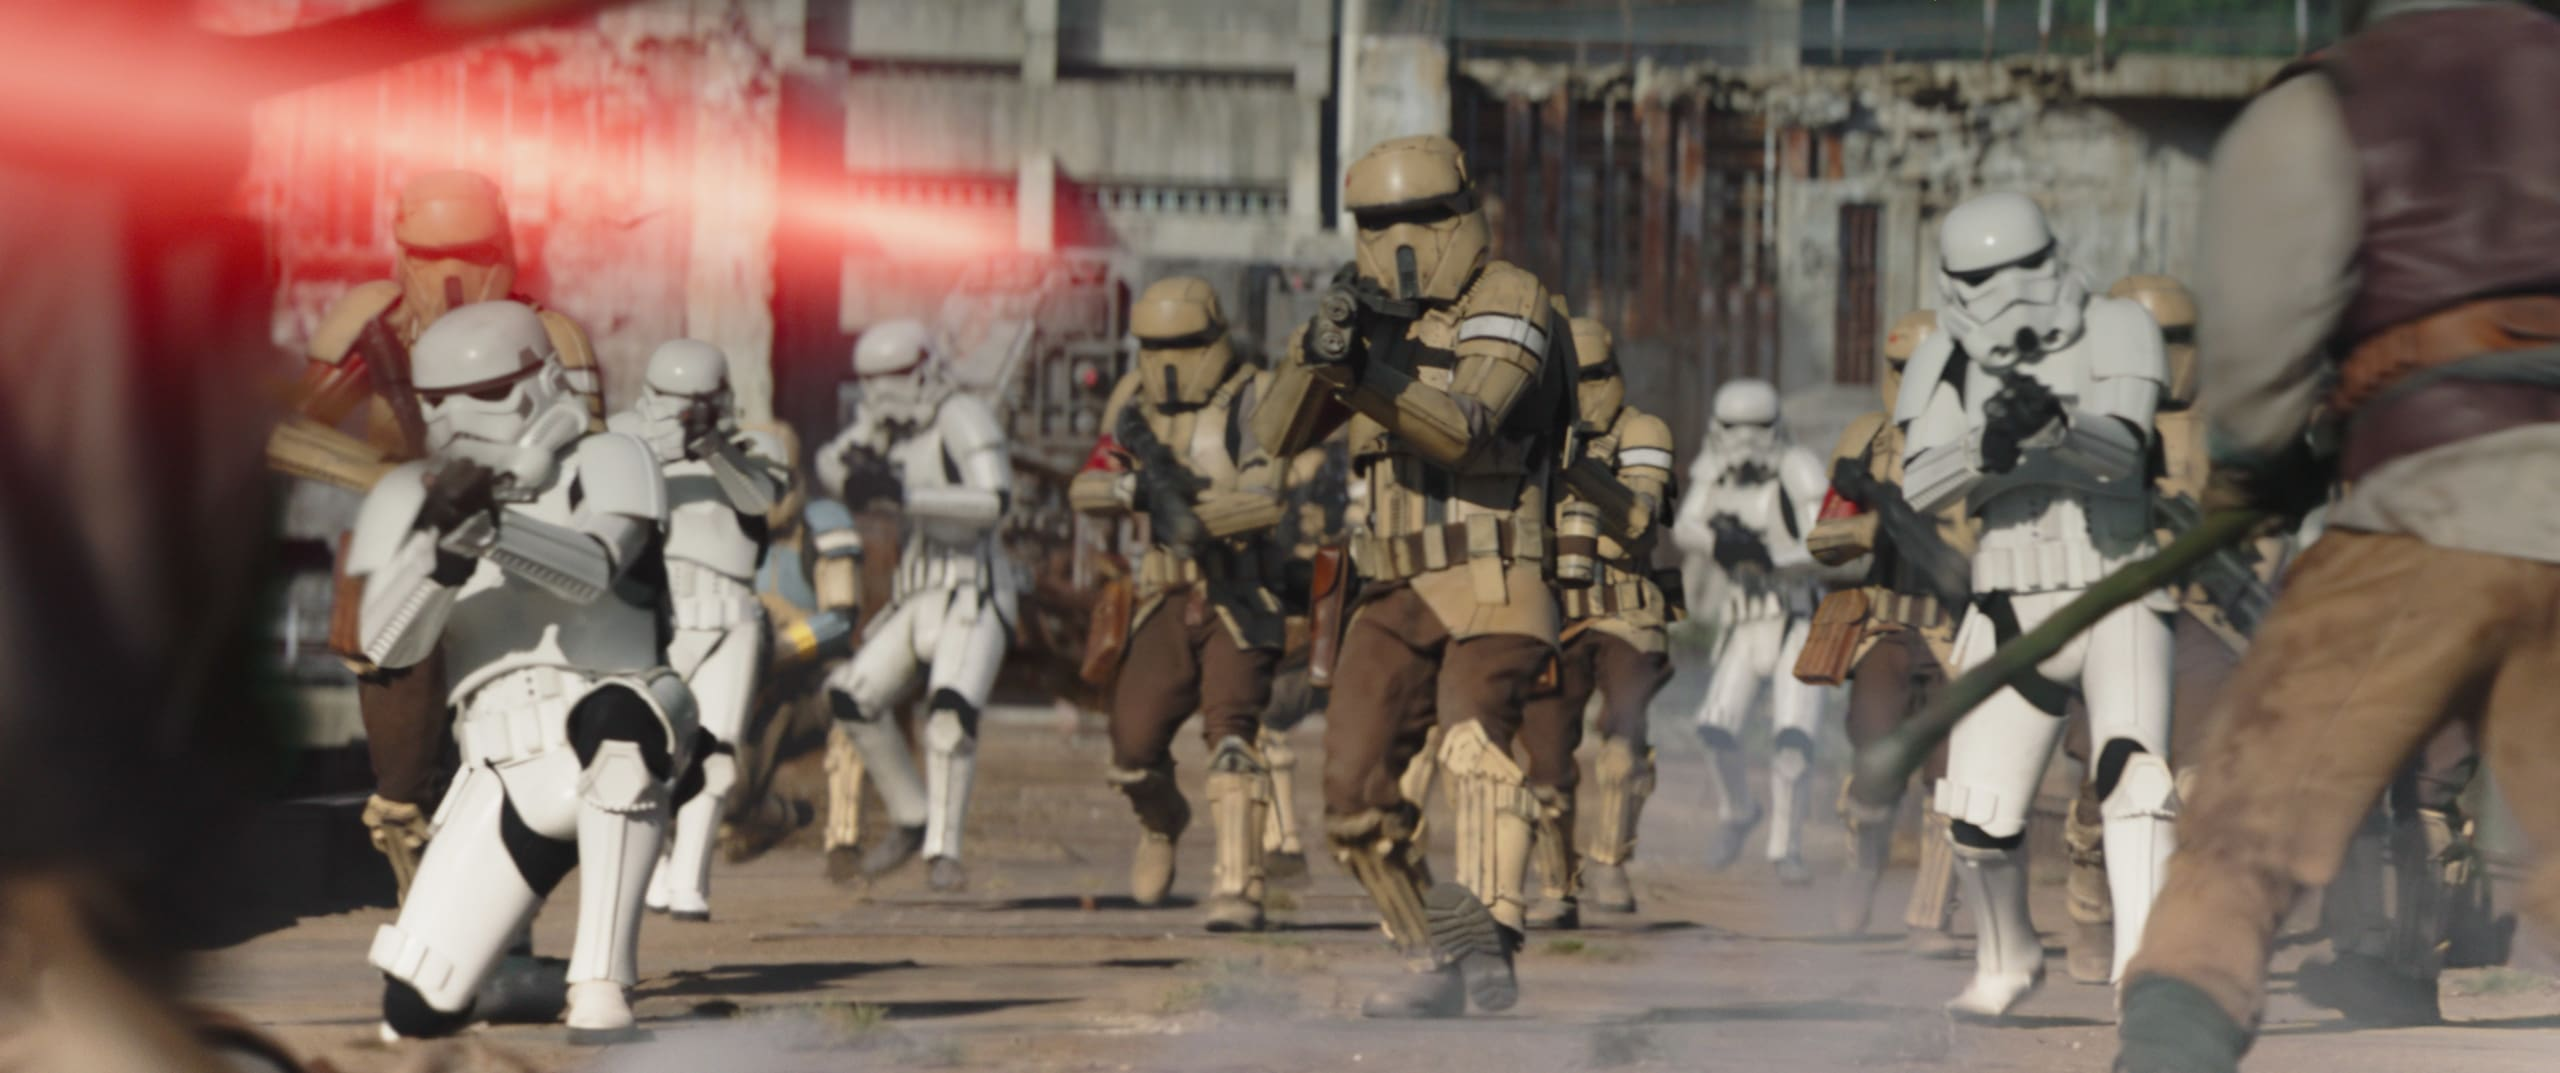 Mandalorian Season Two The Believer Easter Eggs shore troopers